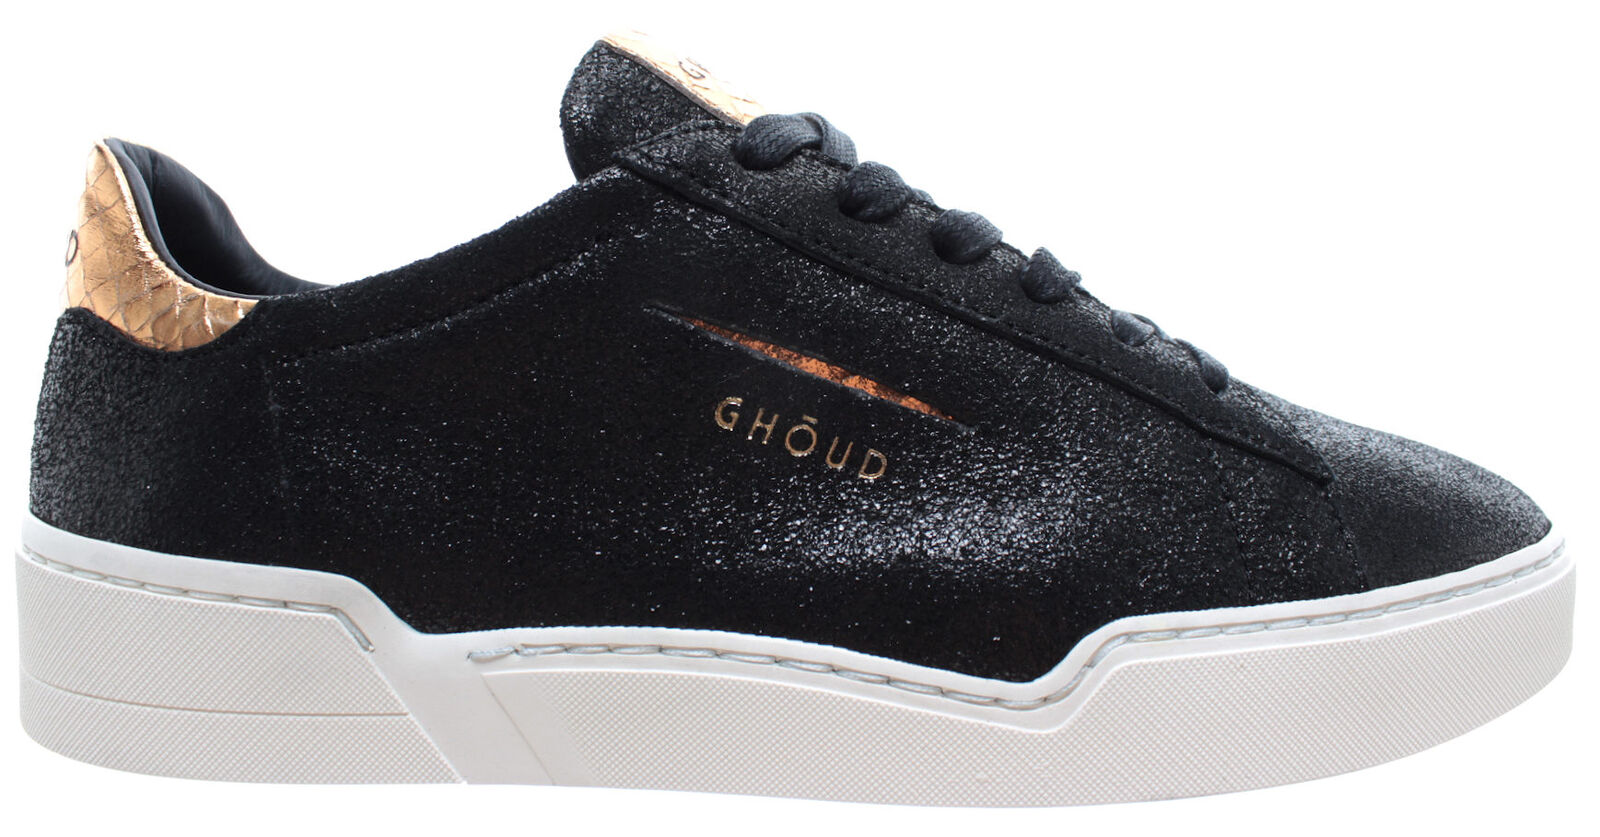 GHOUD Venice Women's shoes Sneakers Sneakers Sneakers Lob 02 Woman Low Salv Black gold Made  f8a9c9